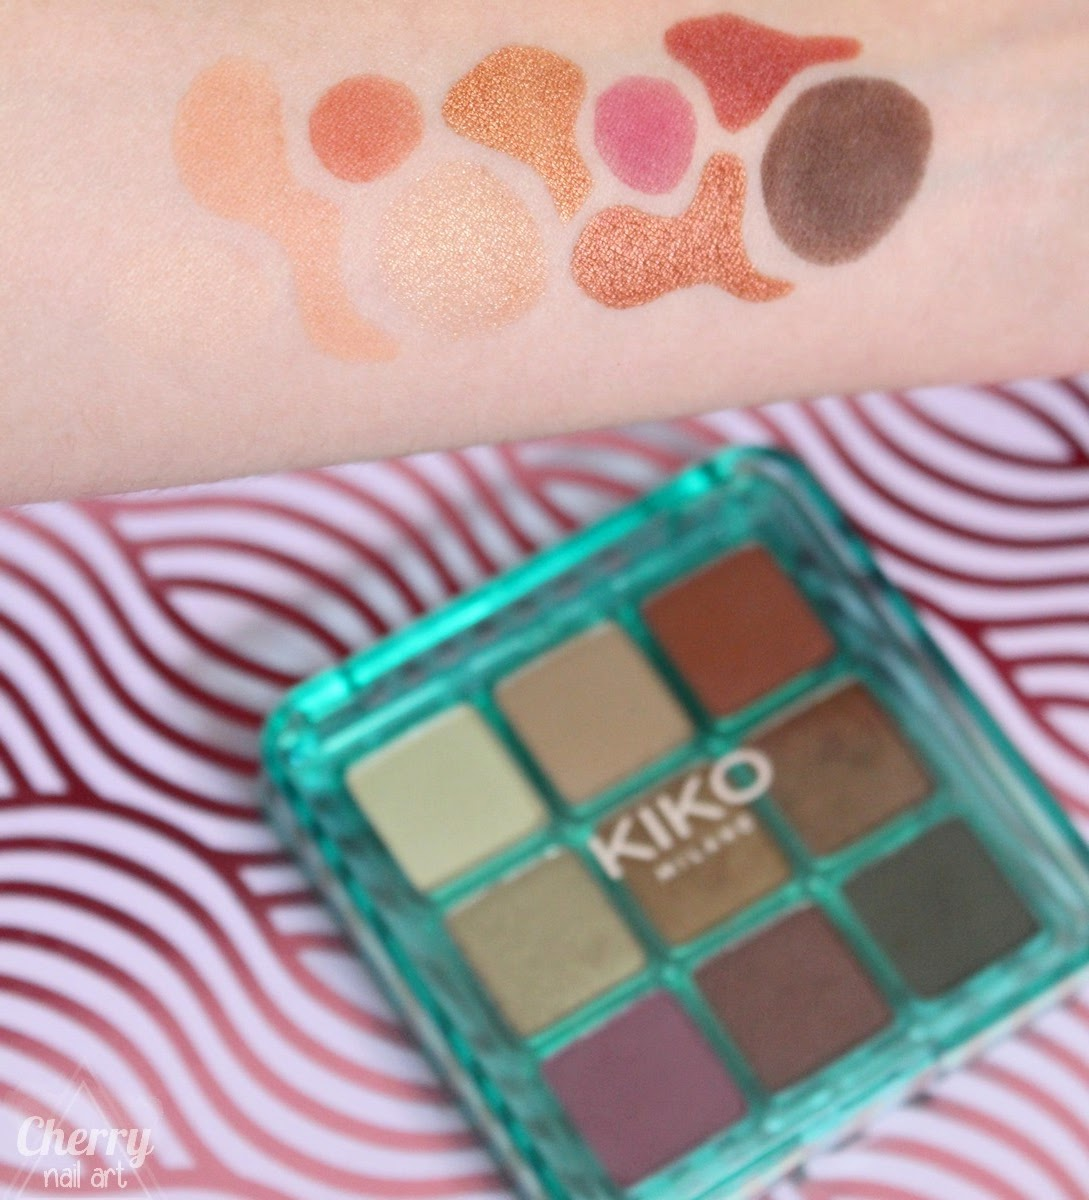 swatch-kiko-jelly-jungle-palette-fards-à-paupières-02-tropical-sunset